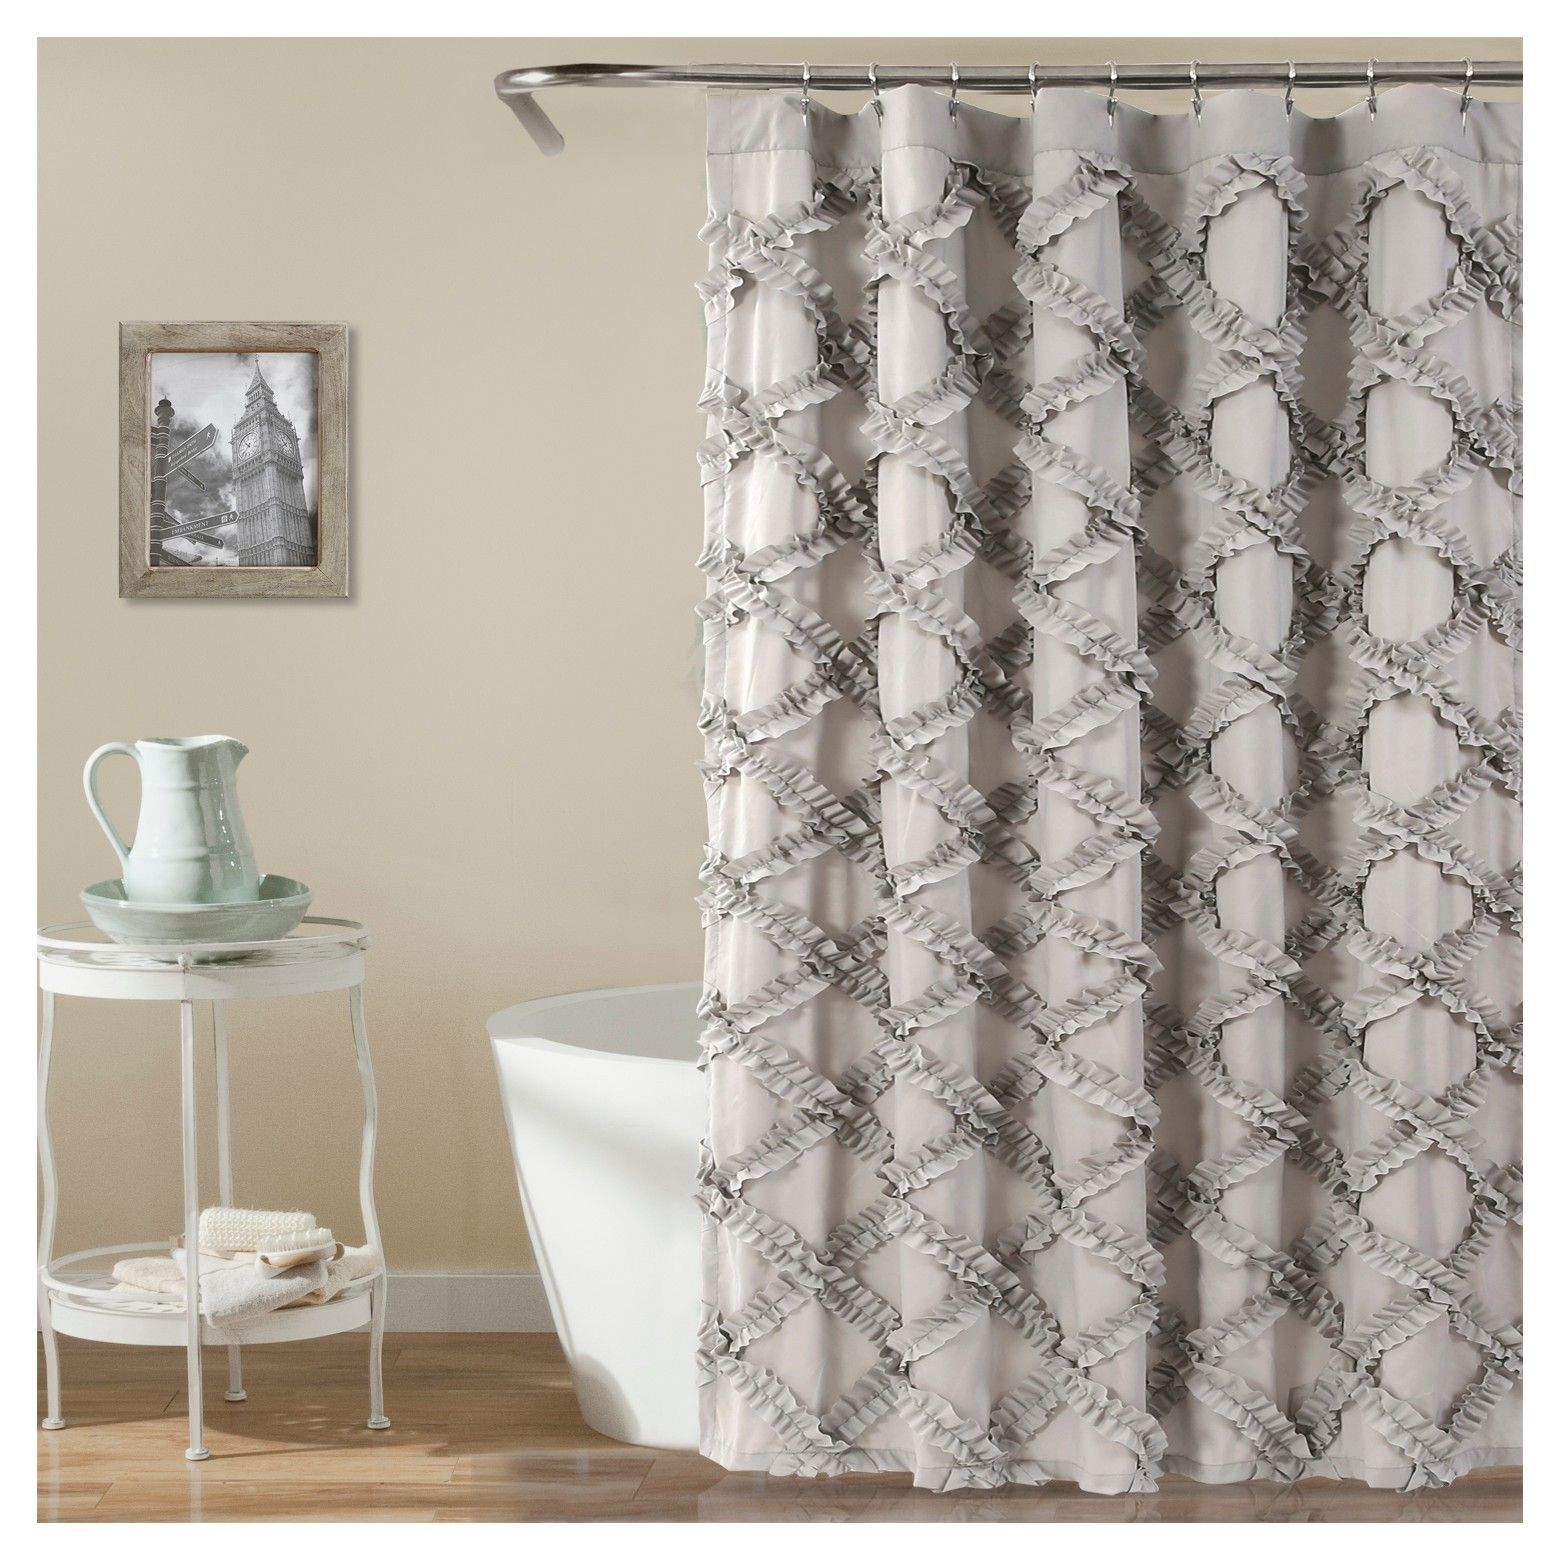 This Ruffle Diamond shower curtain will immediately enhance the look of your bathroom. The ruffle detail adds a feminine touch as well as eye-catching texture to instantly brighten the look of the room. Part of the Ruffle Diamond Collection.